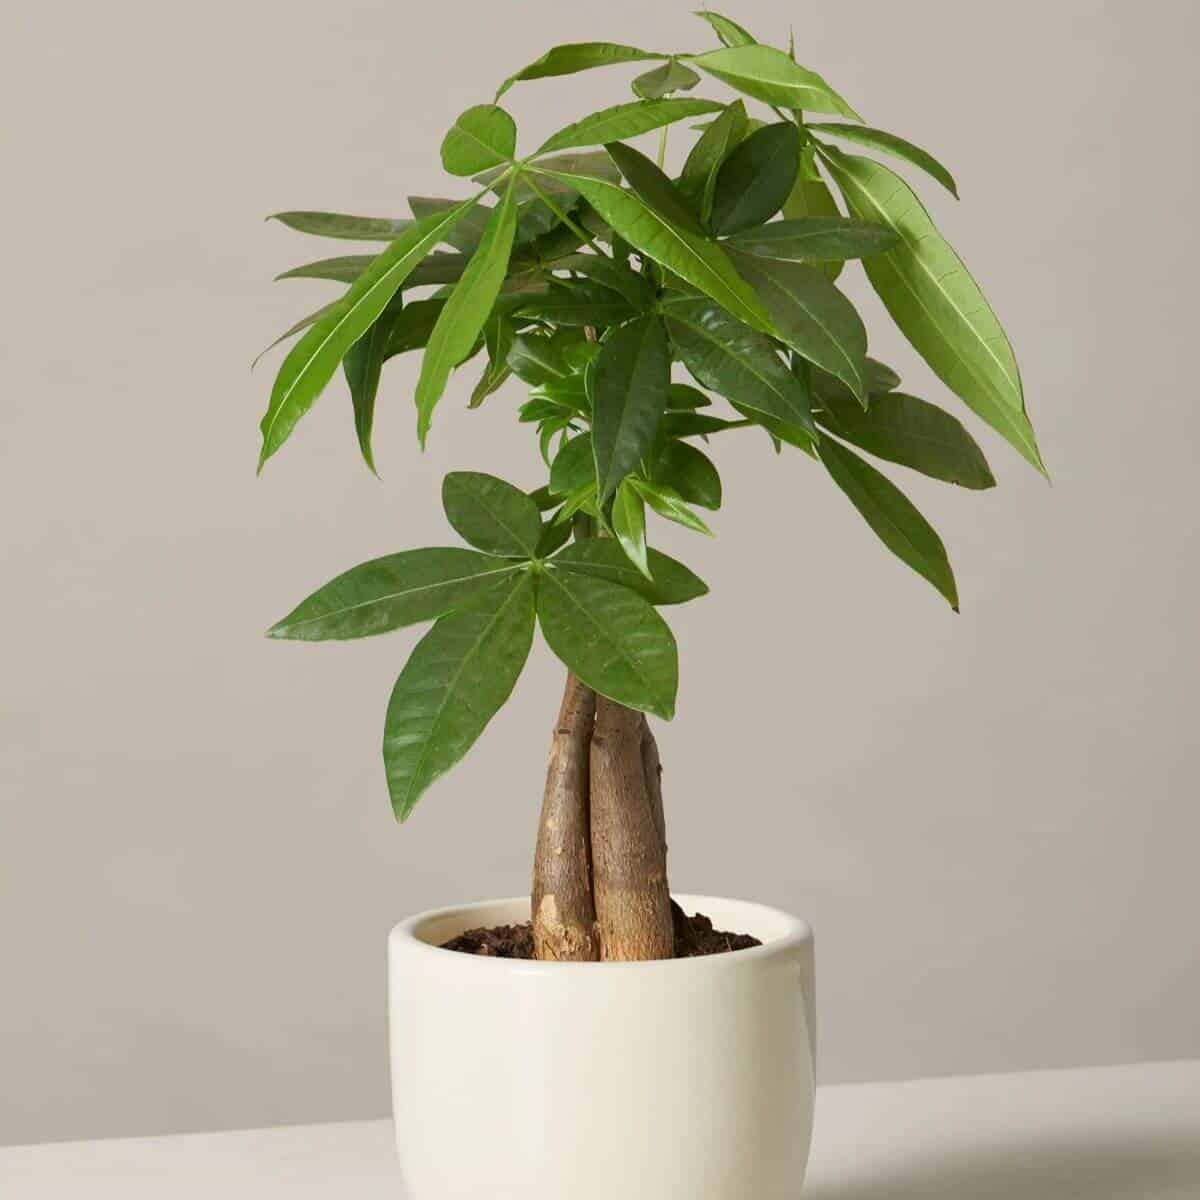 Money plant tree in a cream pot.